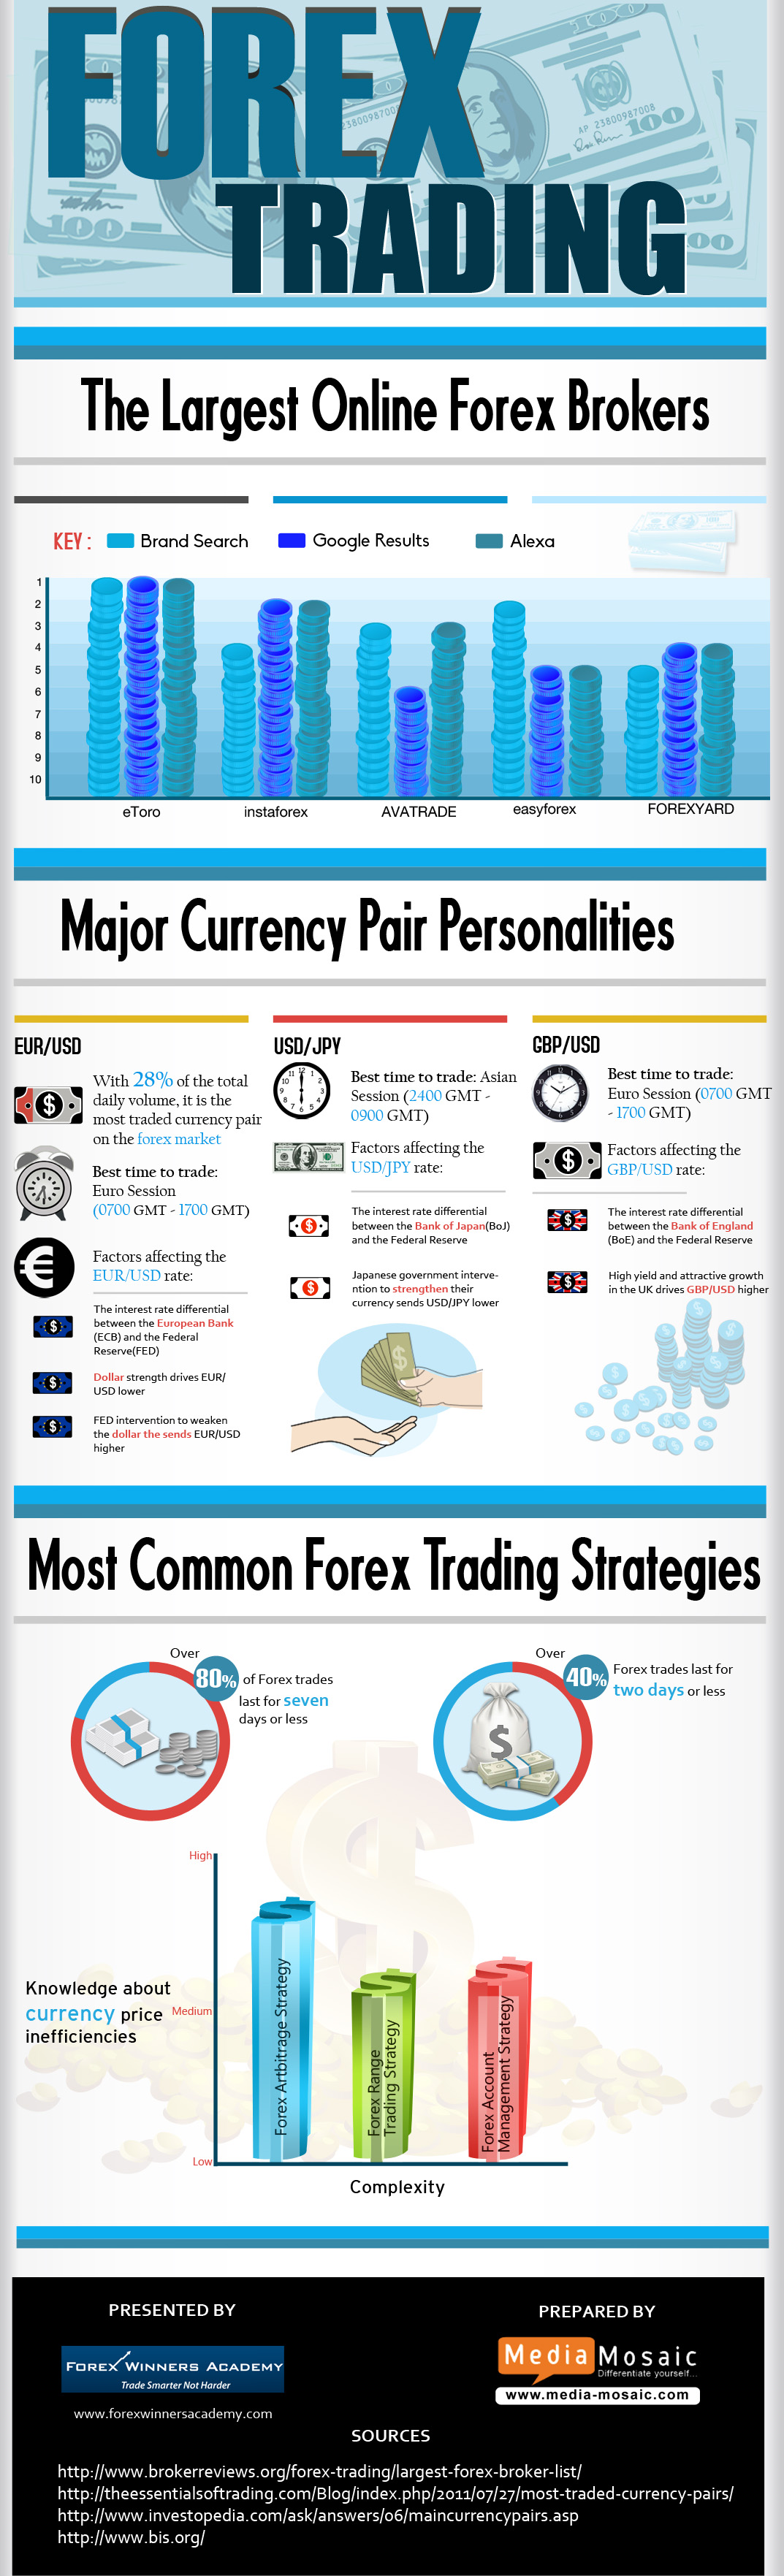 List of forex brokers